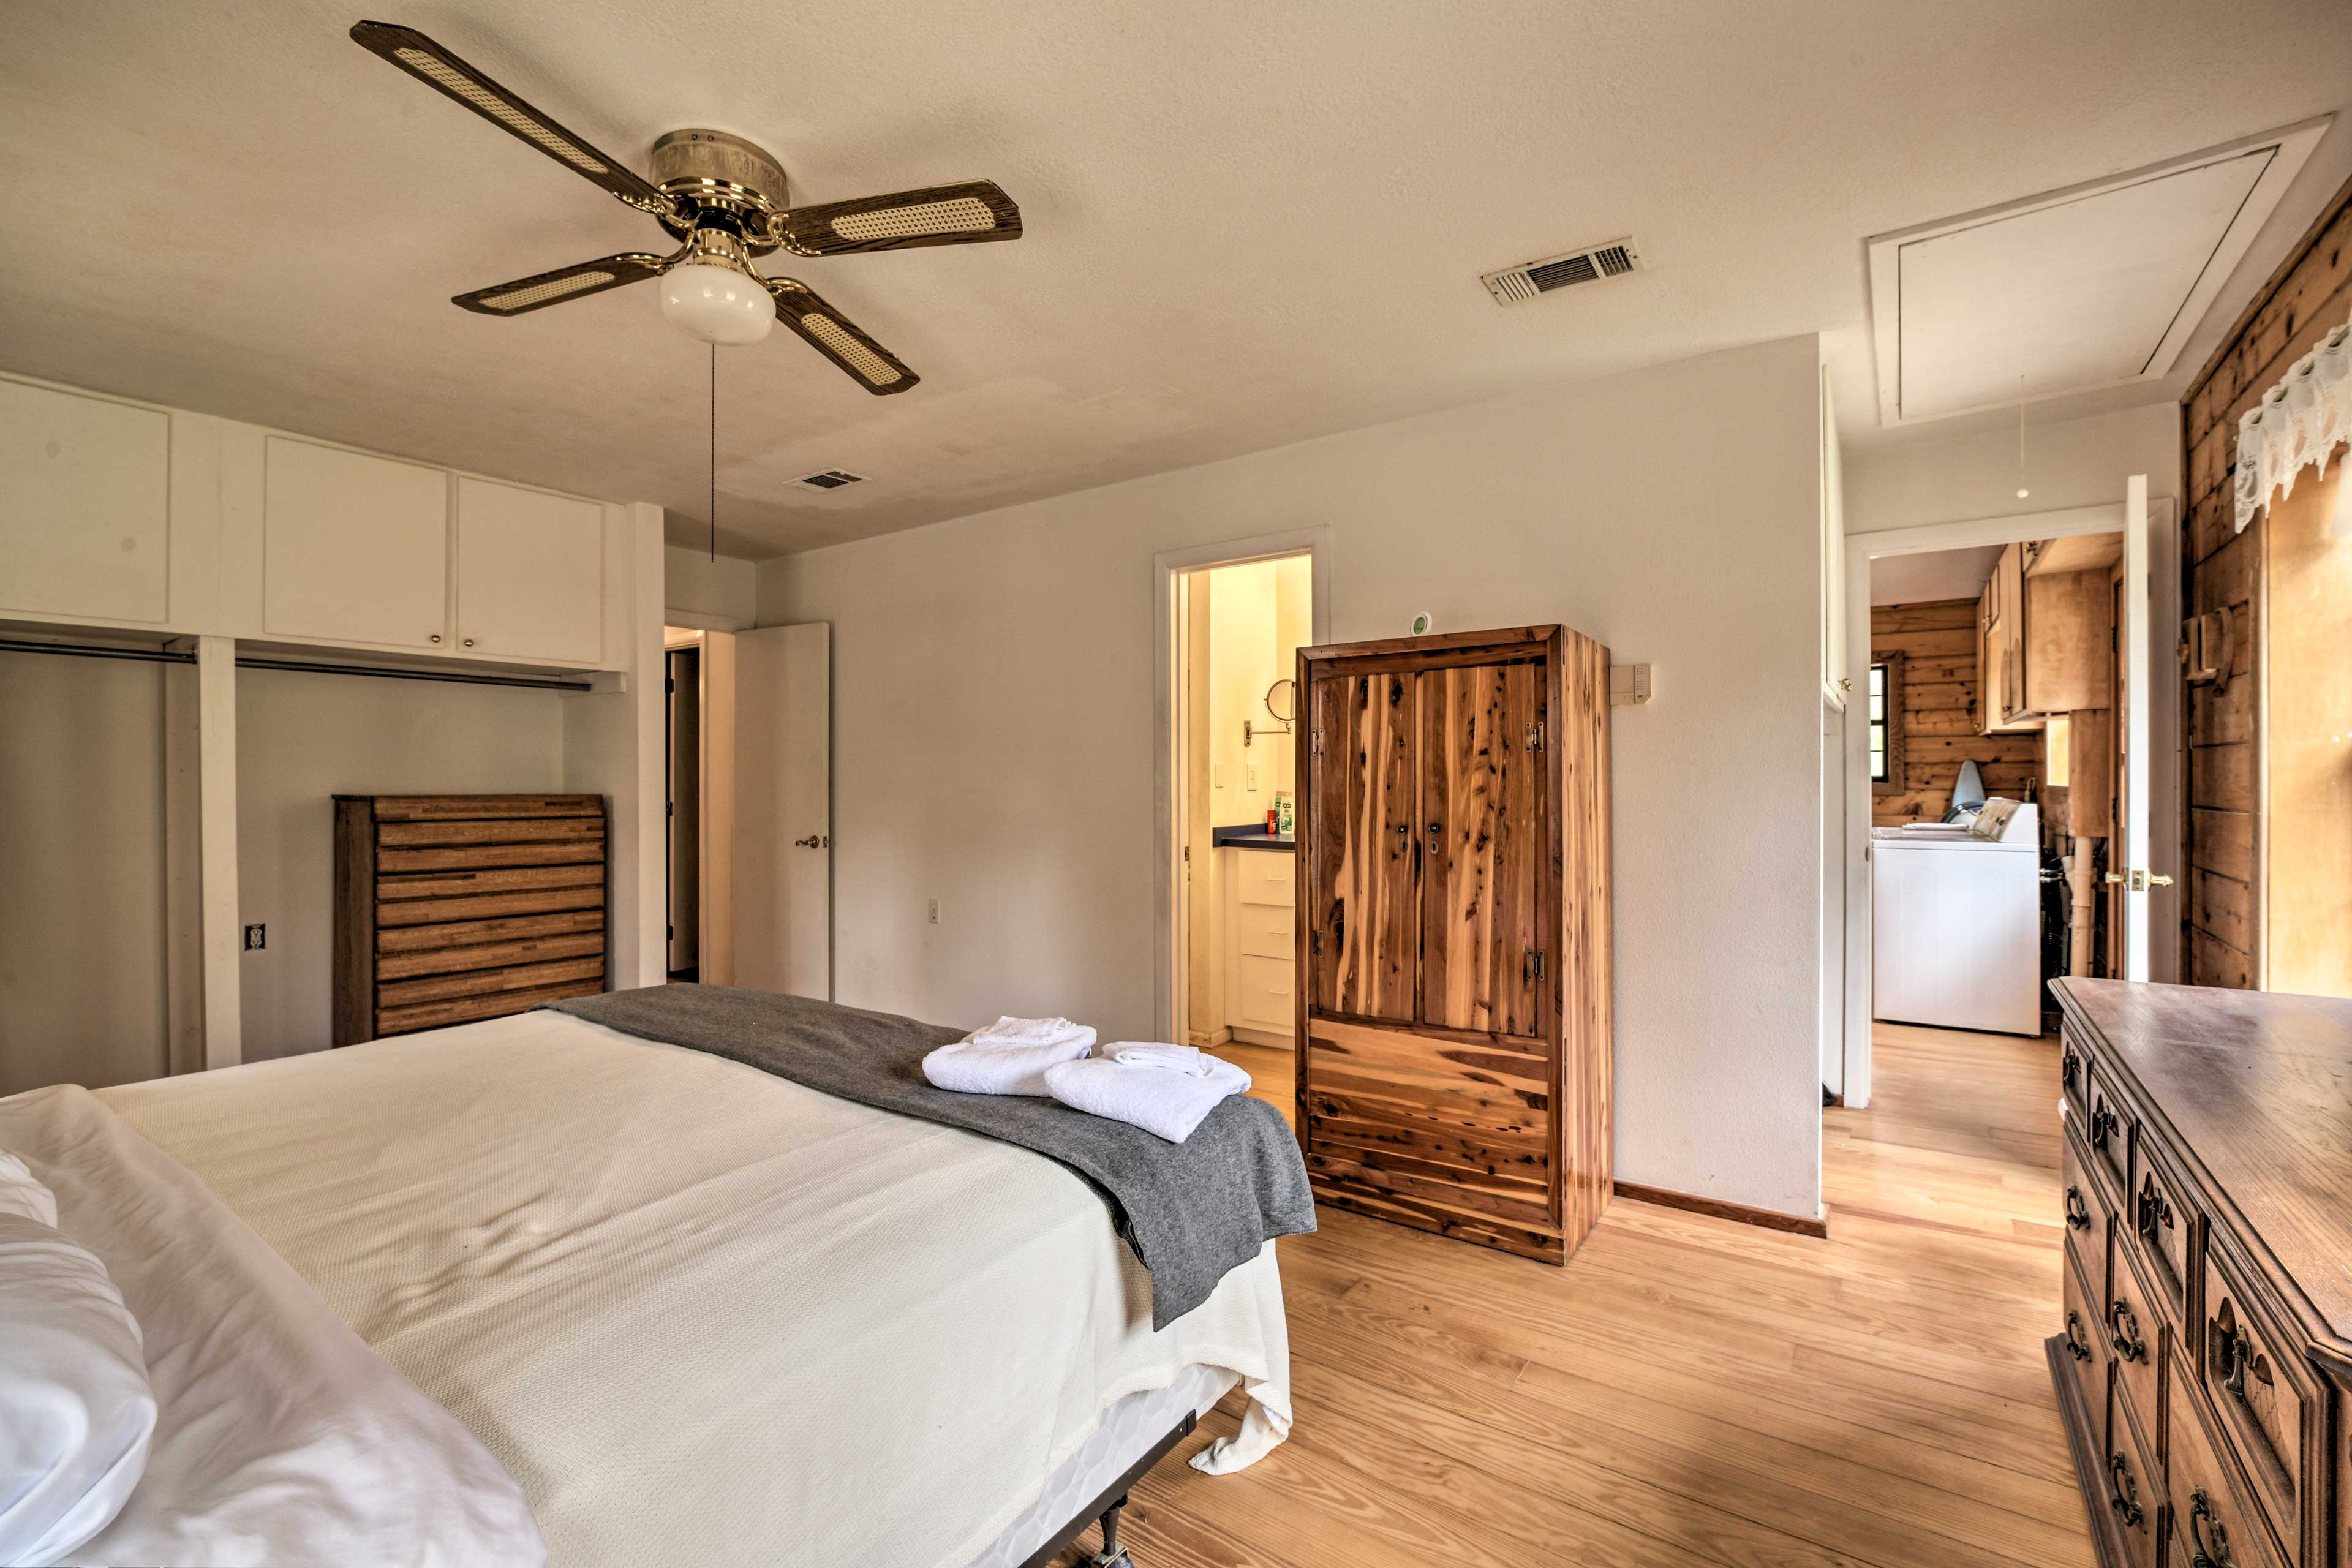 You'll love being able to hop out of bed to use the en-suite bathroom.